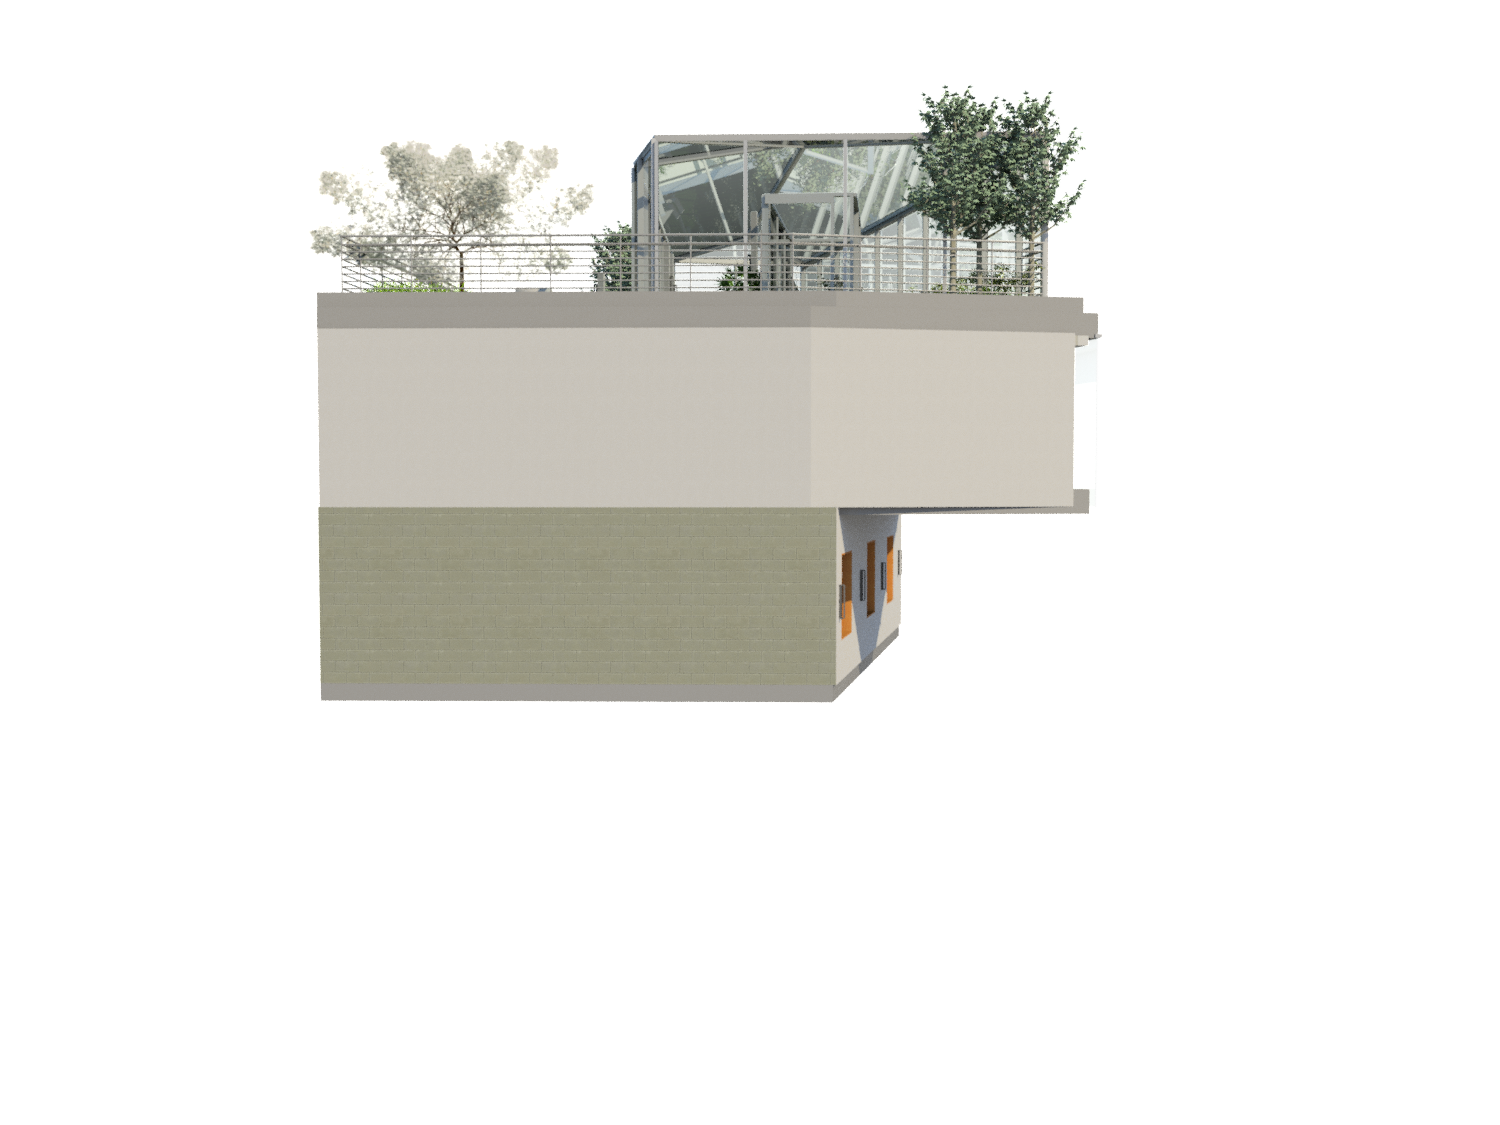 current_greenhouse.rvt_2016-May-18_11-41-01AM-000_3D_View_12.png